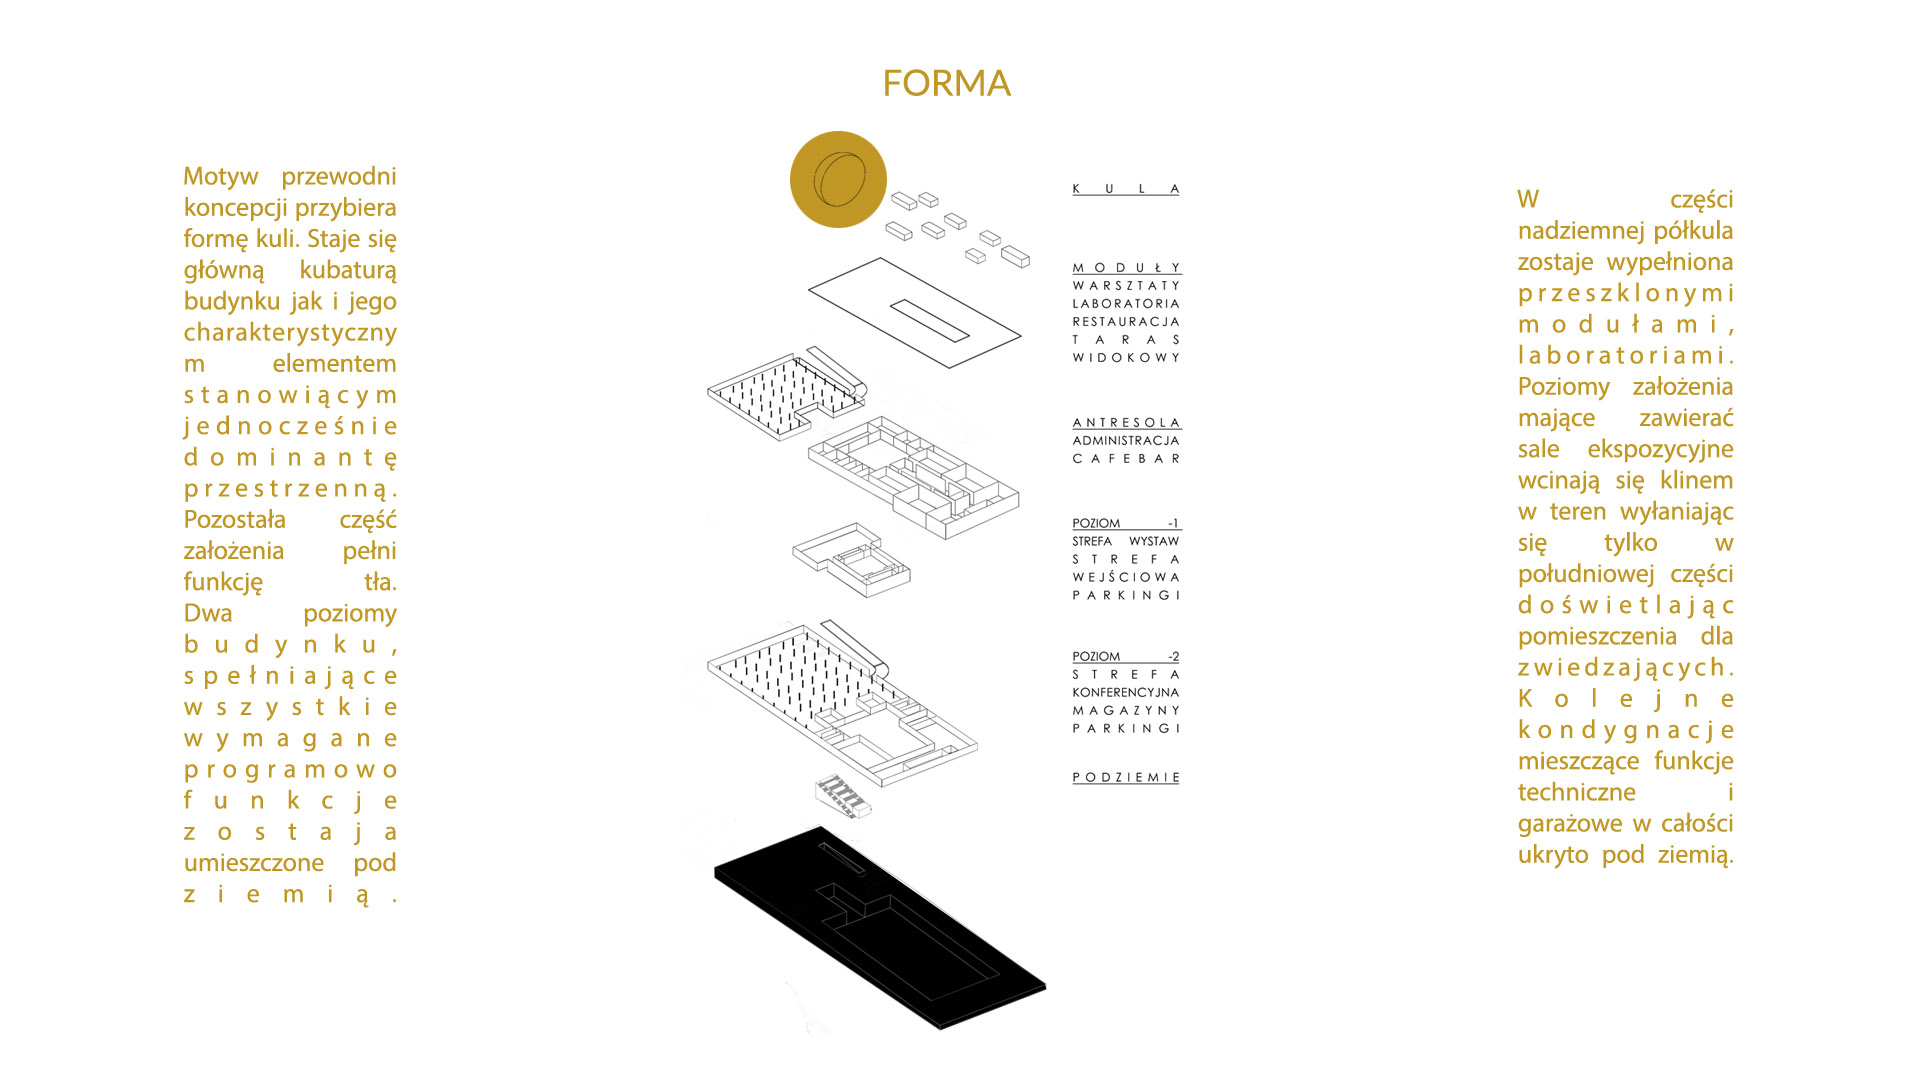 Department of science - forma